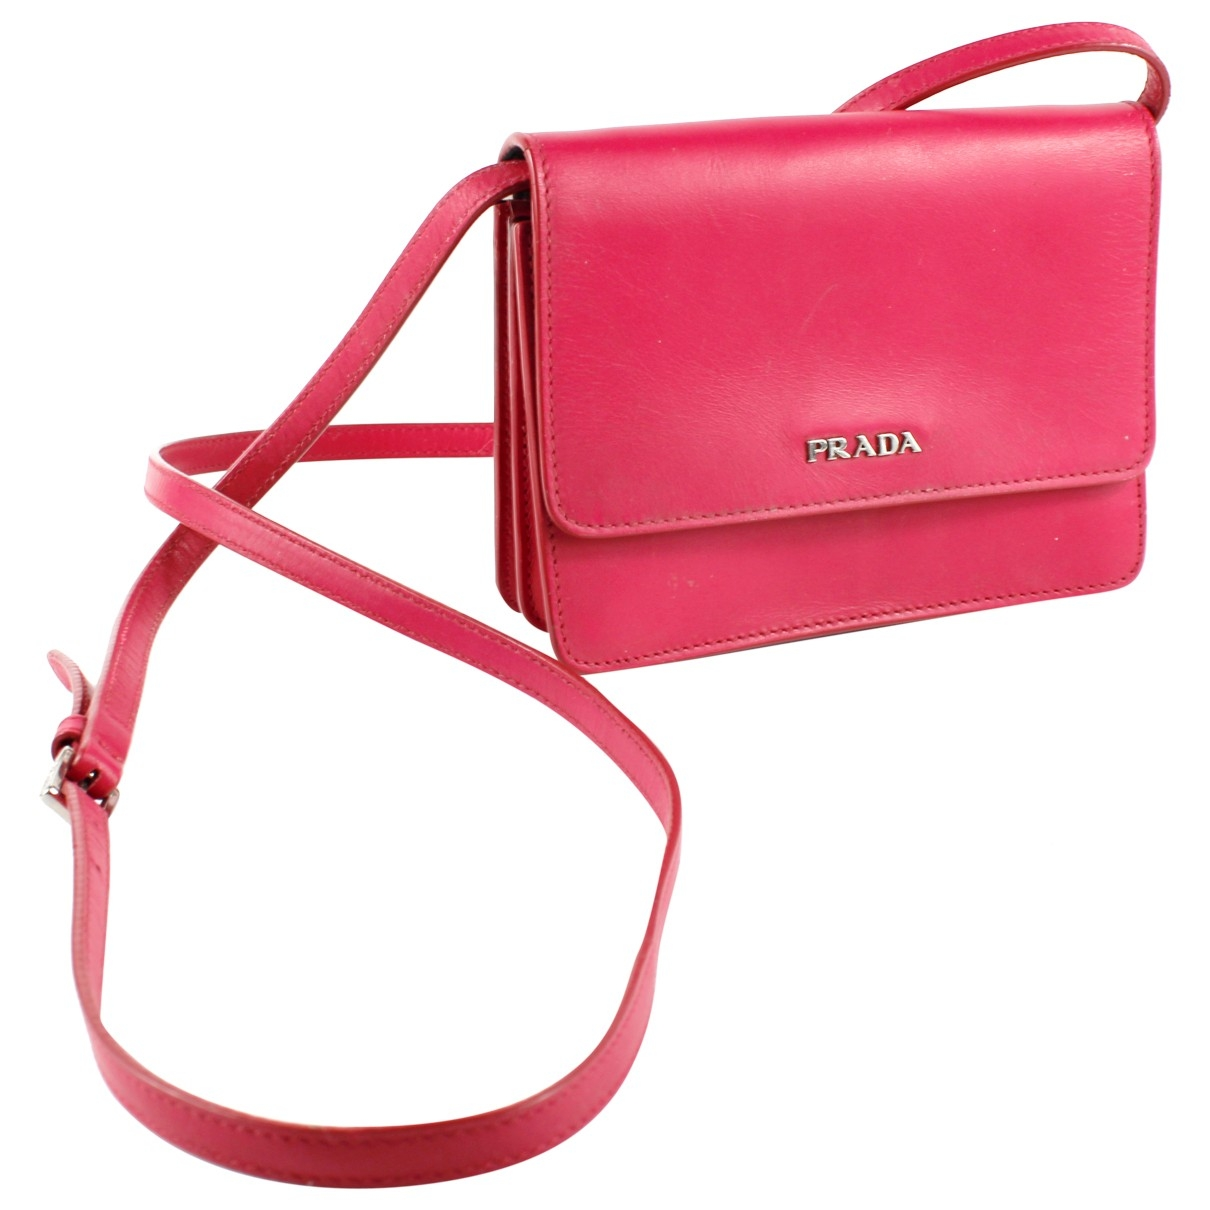 Prada \N Pink Leather handbag for Women \N